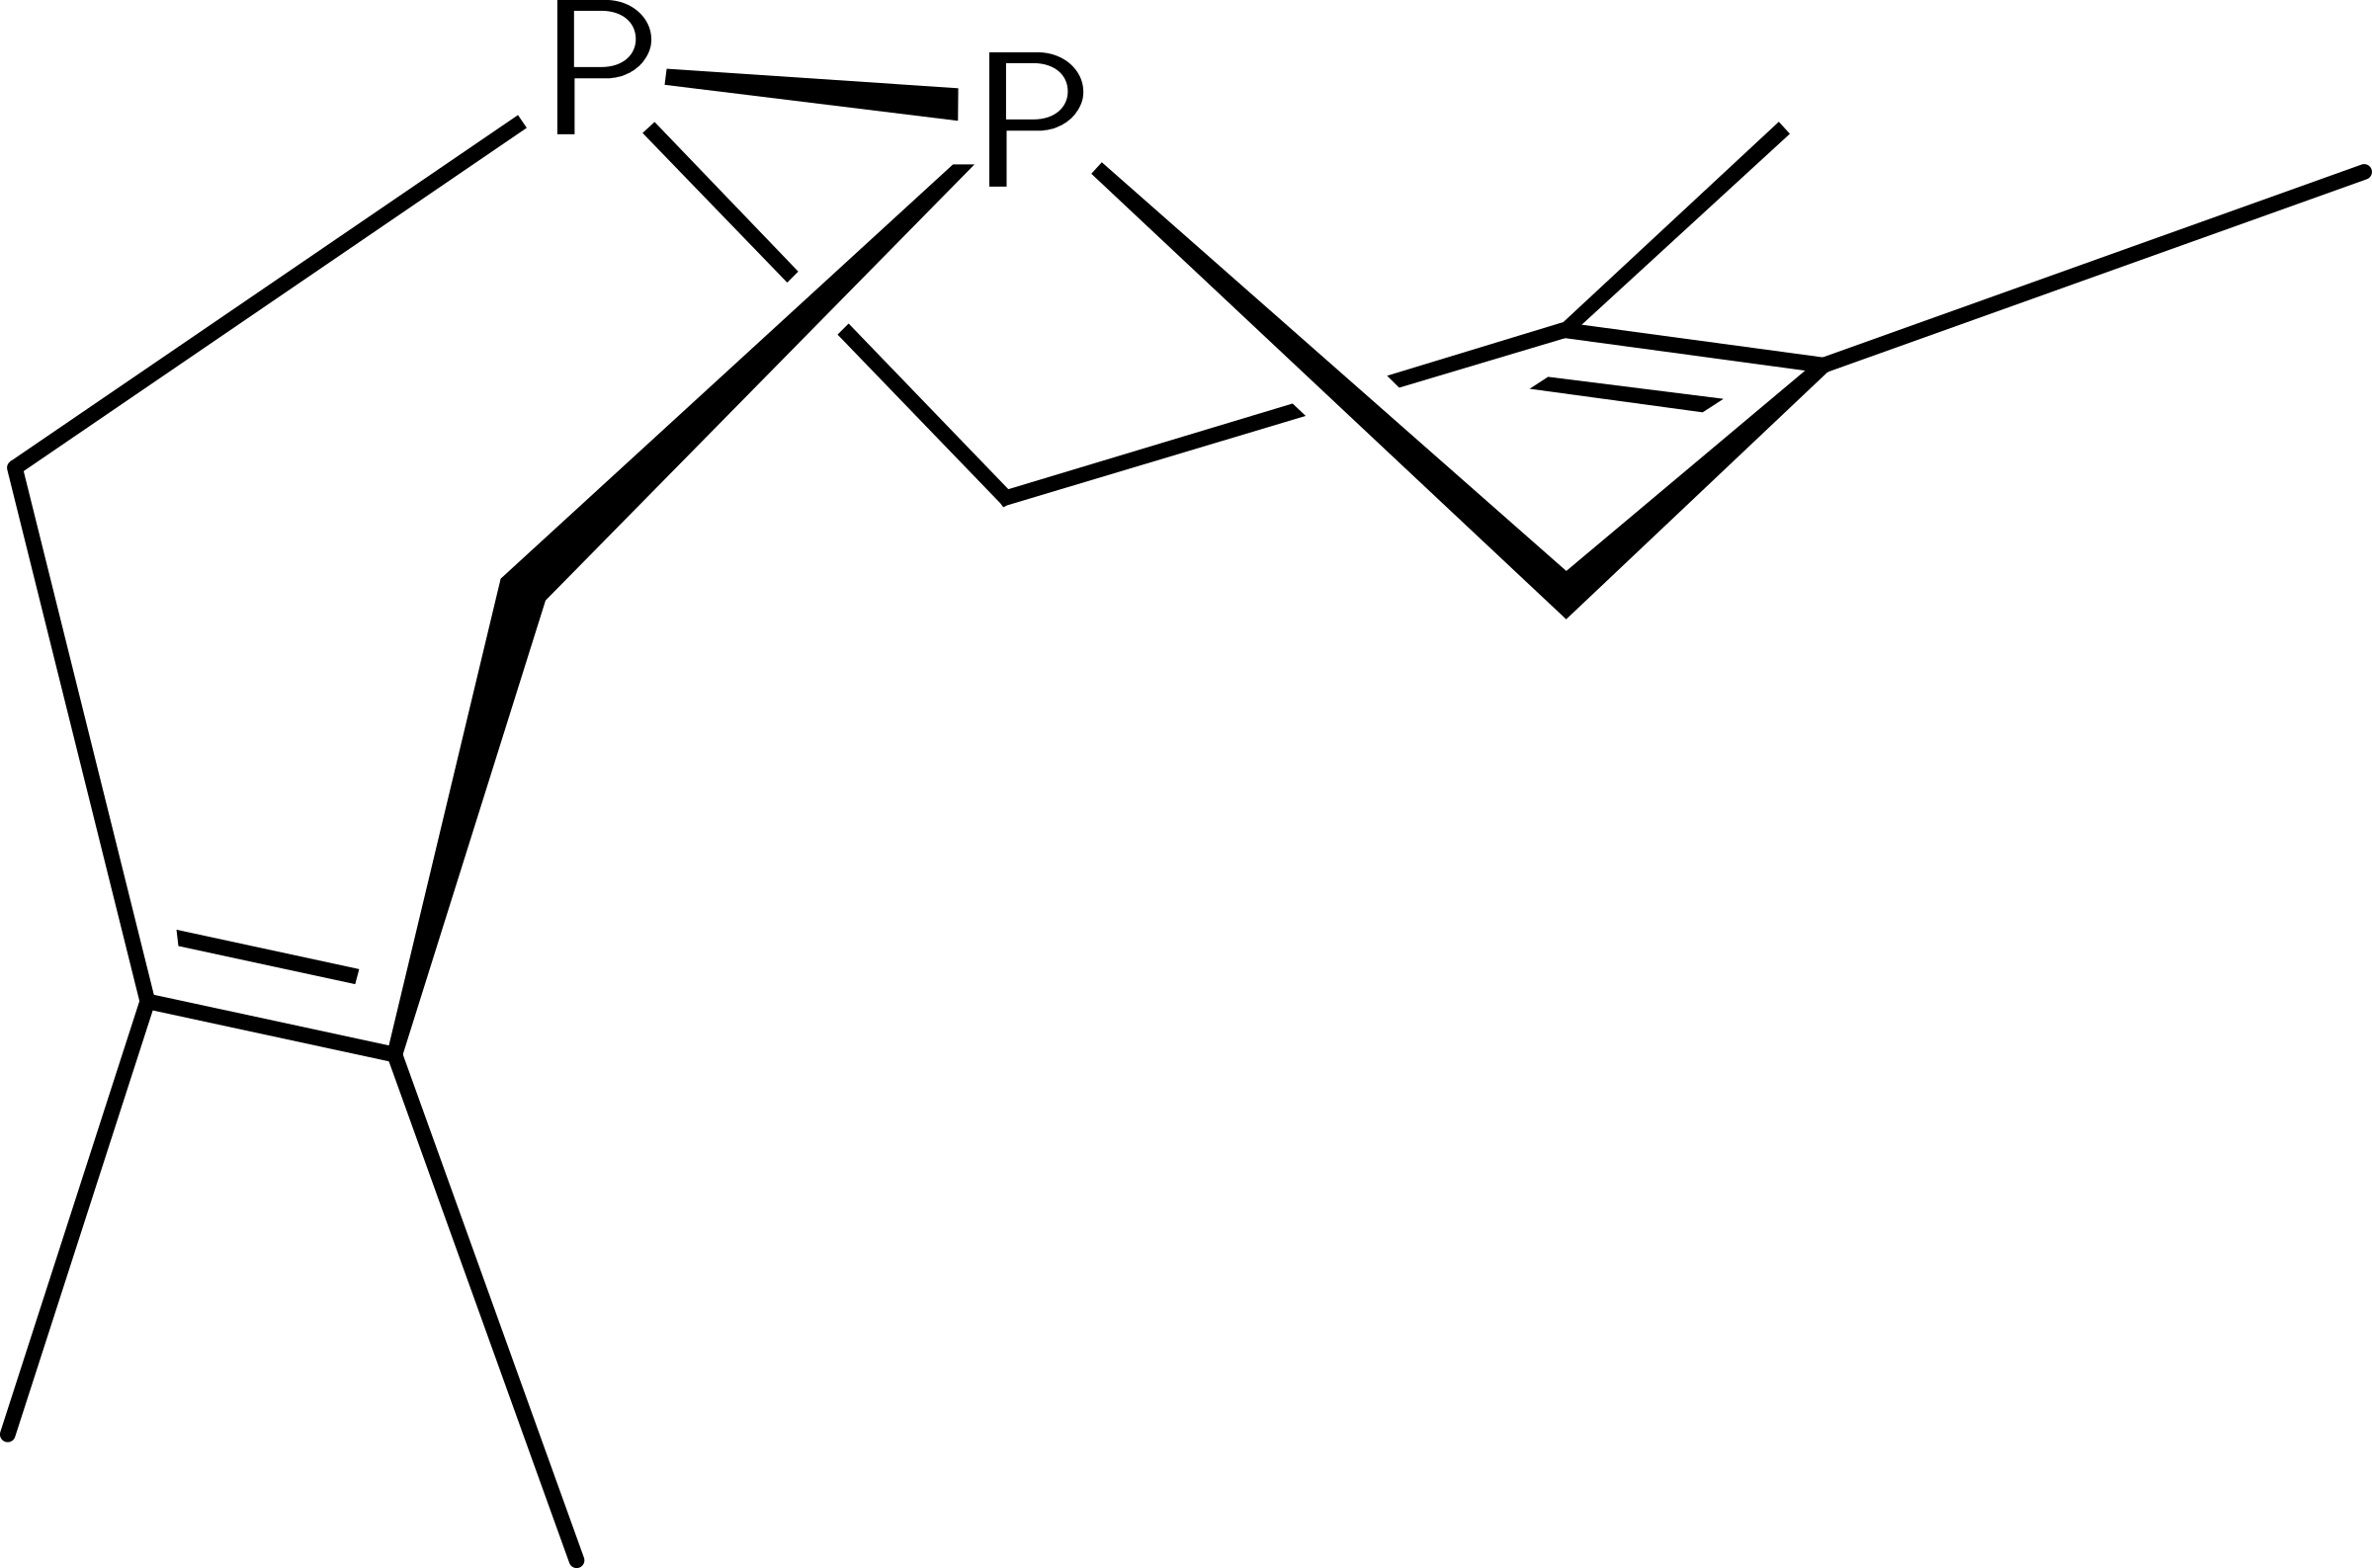 Diphosphorus Double Diels-Alder Adduct with 2,3-dimethylbutadiene by ccummins